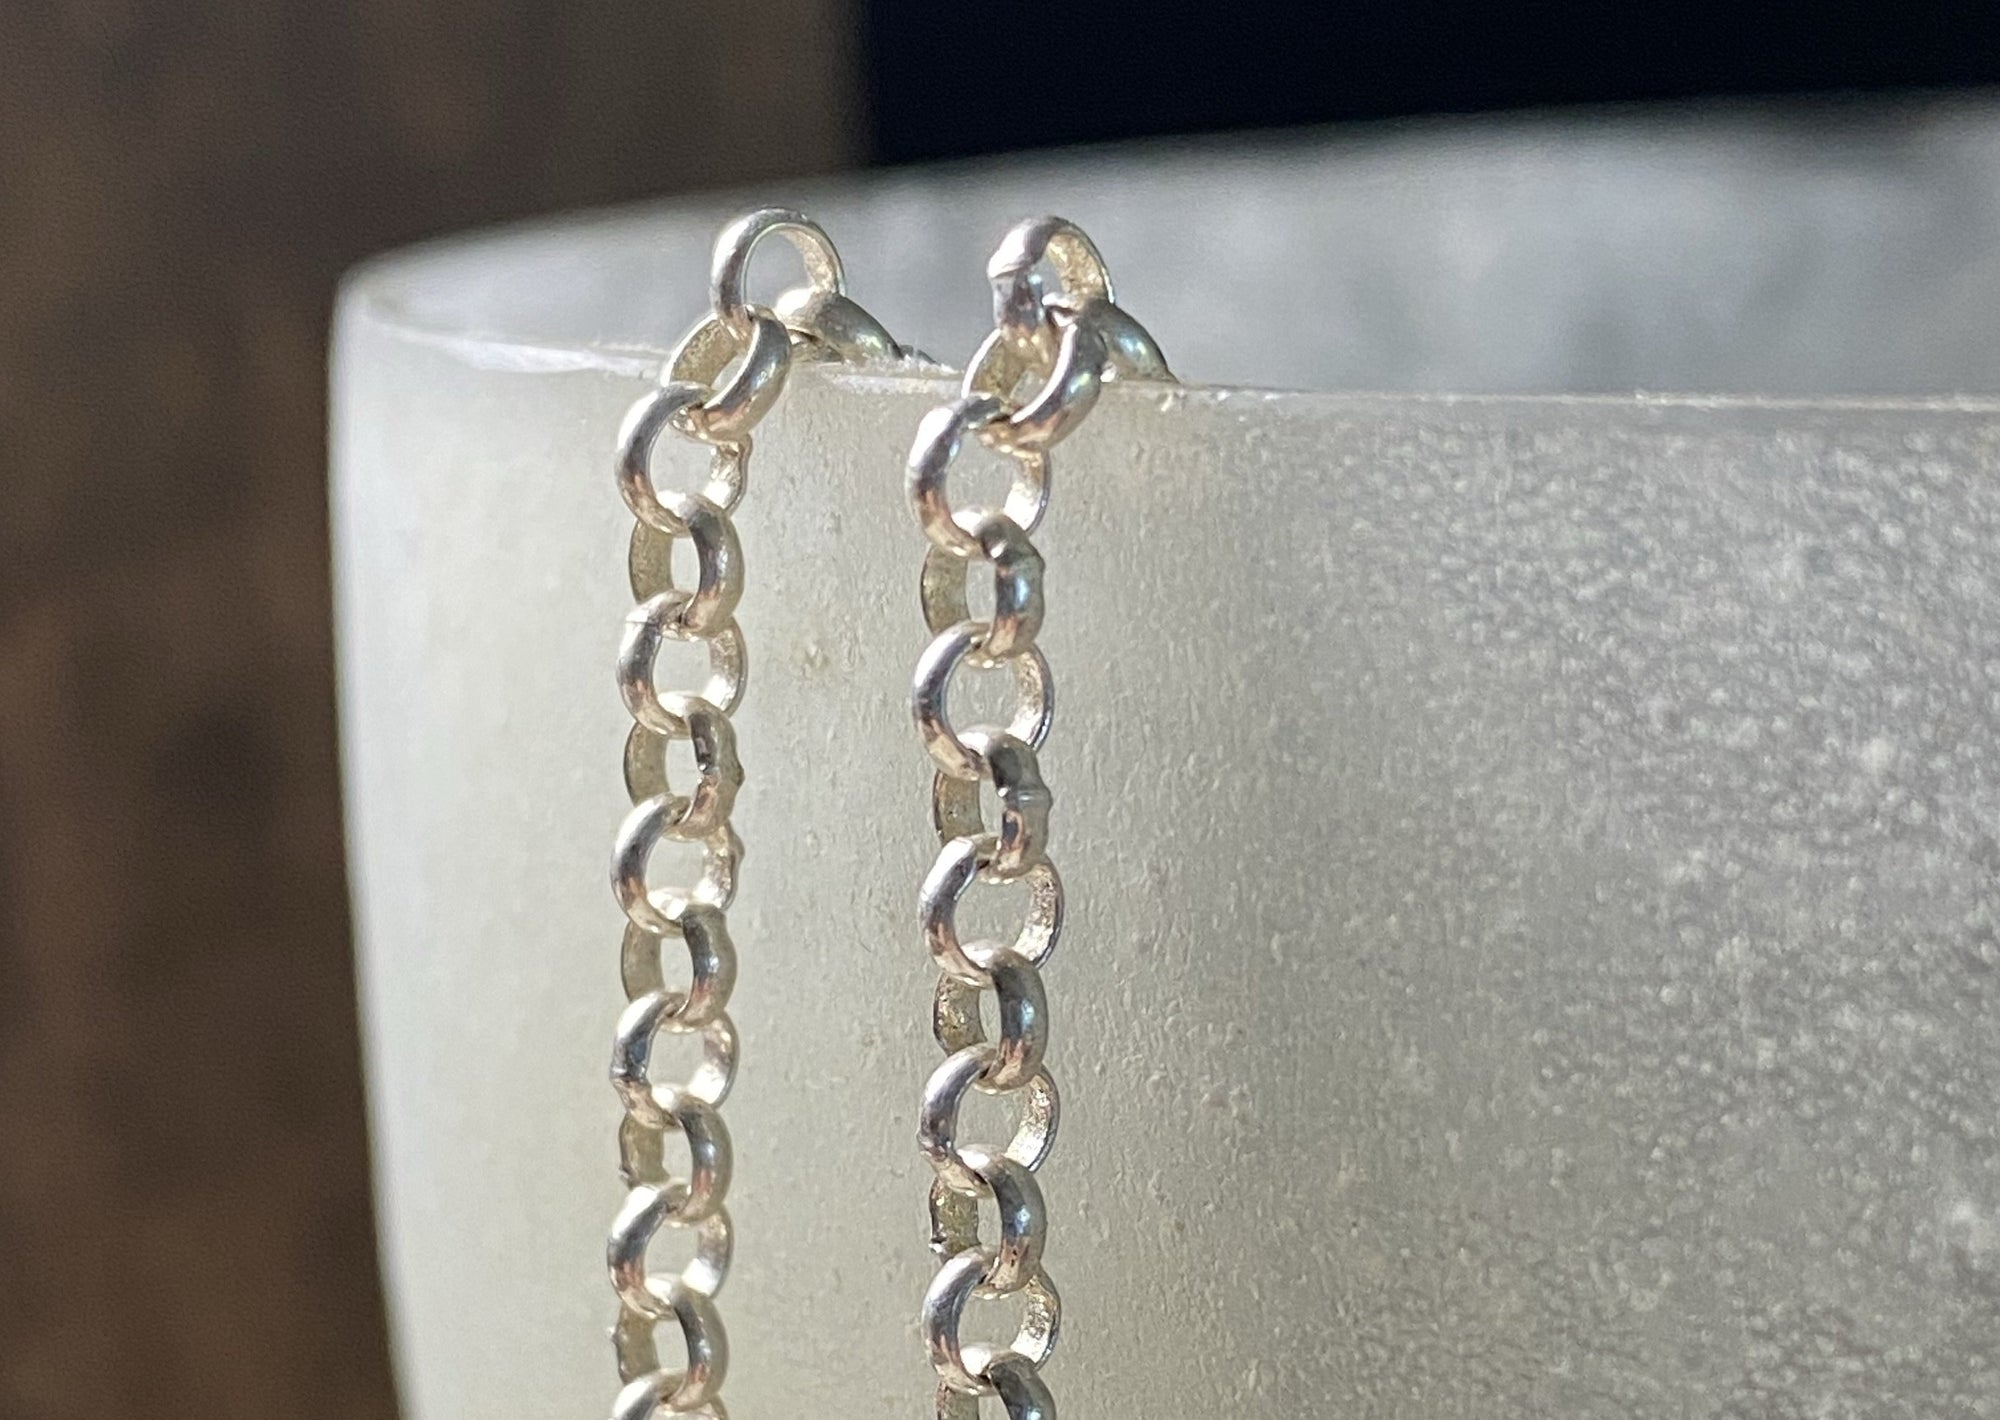 Belcher chain with round links. Sterling silver. Ring clasp